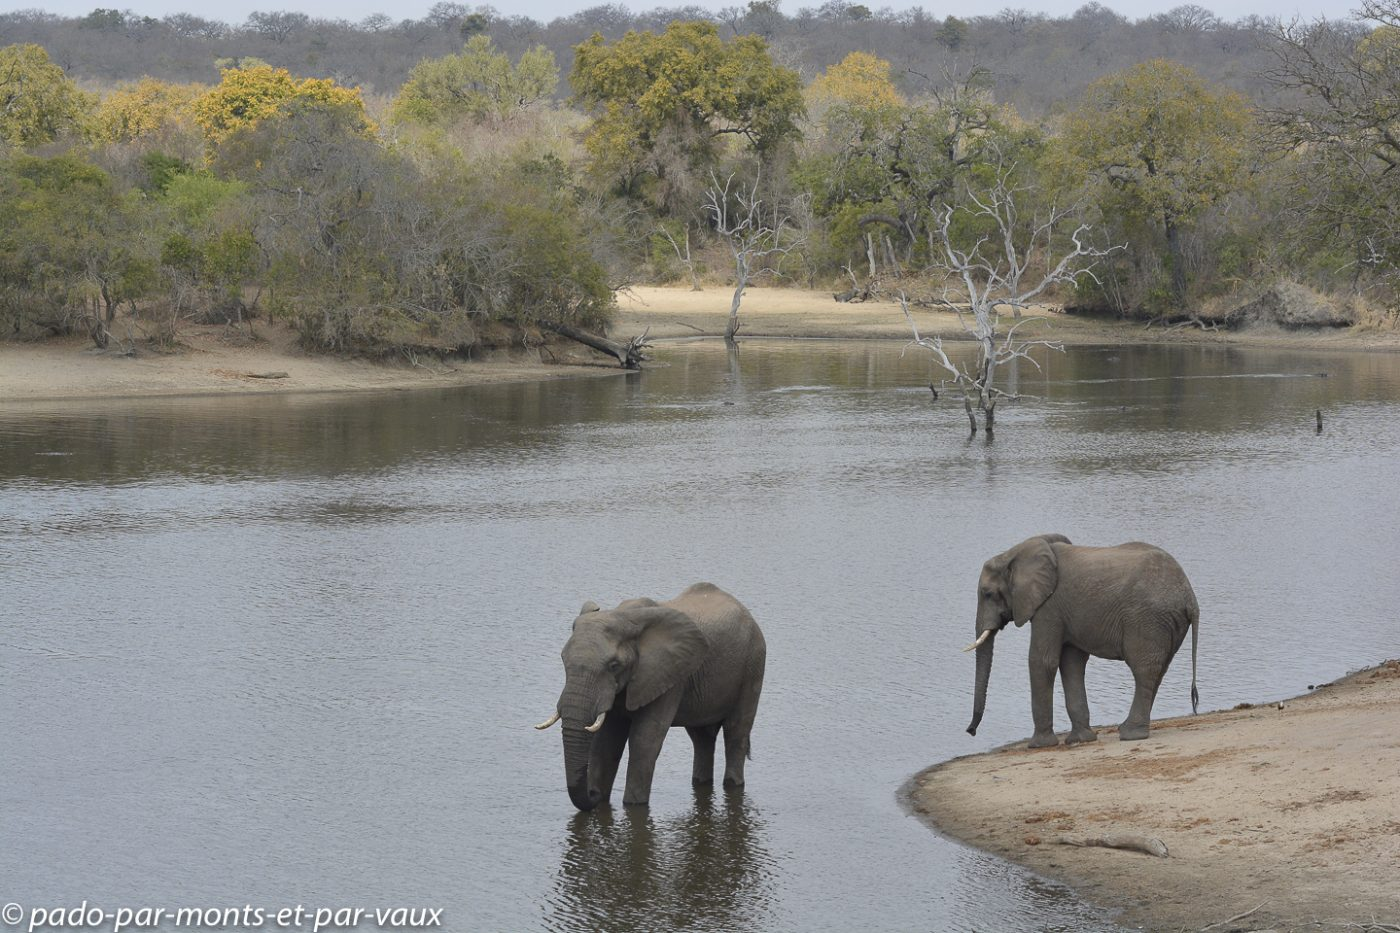 Ulusaba - Elephants